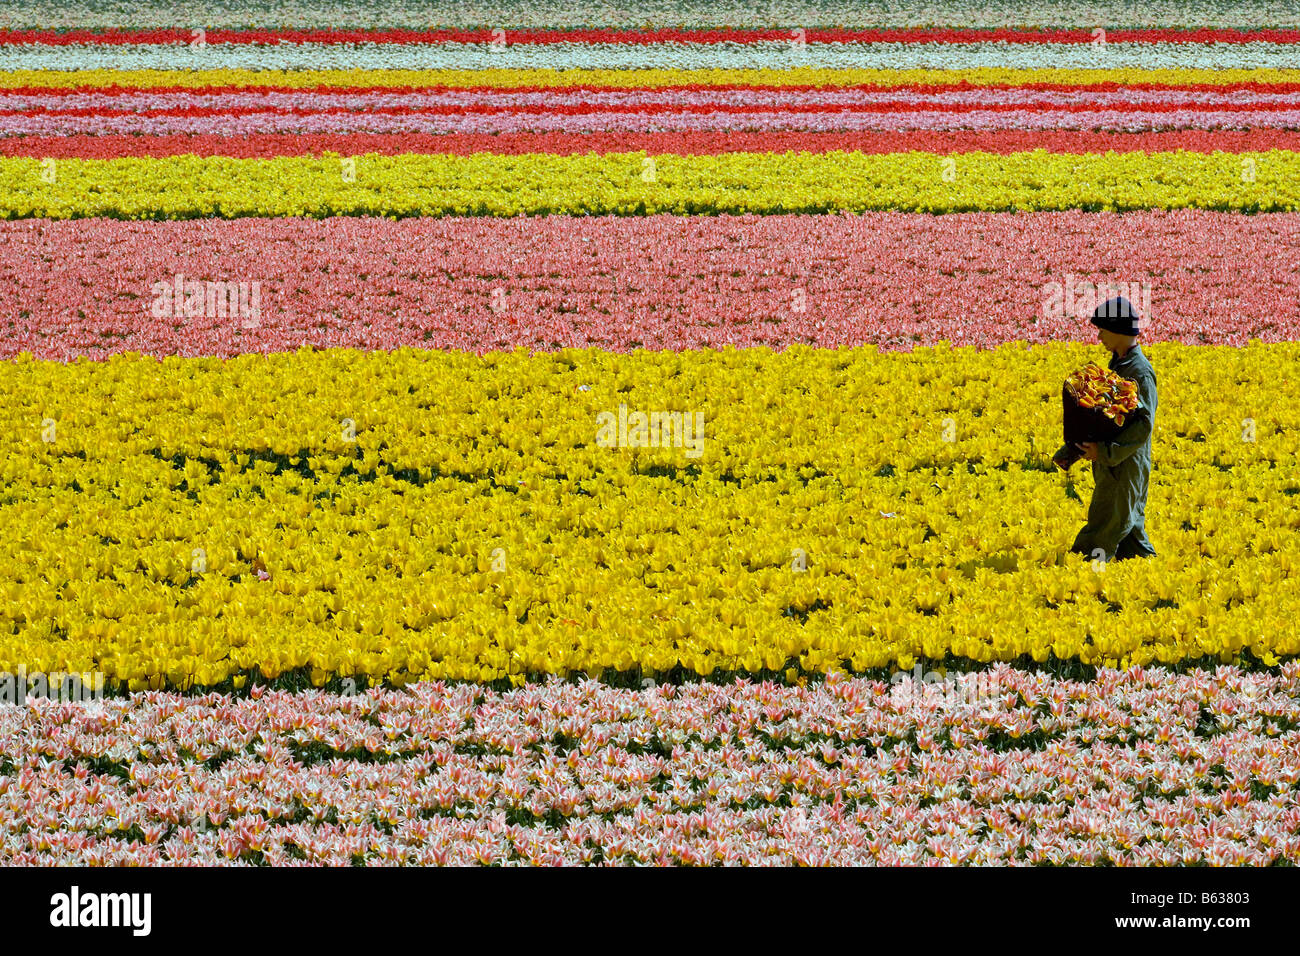 Netherlands Zuid Holland Lisse Worker working in the tulip field - Stock Image